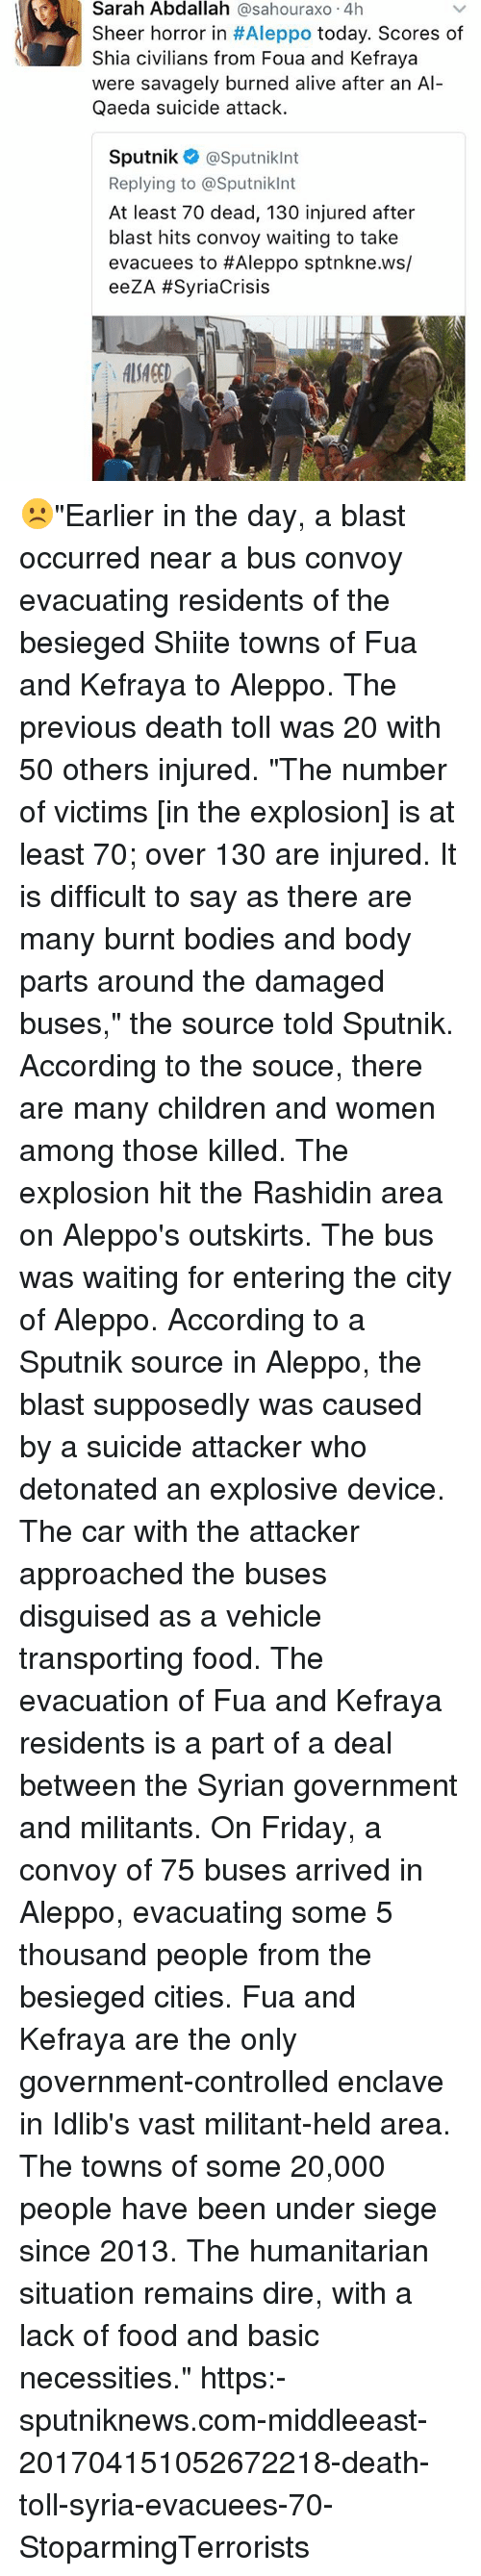 "Alive, Bodies , and Children: Sarah Abdallah  @sahouraxo 4h  Sheer horror in  #Aleppo today. Scores of  Shia civilians from Foua and Kefraya  were savagely burned alive after an Al  Qaeda suicide attack.  Sputnik  @Sputniklnt  Replying to @Sputnikint  At least 70 dead, 130 injured after  blast hits convoy waiting to take  evacuees to Aleppo sptnkne.ws/  eeZA #Syria Crisis ☹️""Earlier in the day, a blast occurred near a bus convoy evacuating residents of the besieged Shiite towns of Fua and Kefraya to Aleppo. The previous death toll was 20 with 50 others injured. ""The number of victims [in the explosion] is at least 70; over 130 are injured. It is difficult to say as there are many burnt bodies and body parts around the damaged buses,"" the source told Sputnik. According to the souce, there are many children and women among those killed. The explosion hit the Rashidin area on Aleppo's outskirts. The bus was waiting for entering the city of Aleppo. According to a Sputnik source in Aleppo, the blast supposedly was caused by a suicide attacker who detonated an explosive device. The car with the attacker approached the buses disguised as a vehicle transporting food. The evacuation of Fua and Kefraya residents is a part of a deal between the Syrian government and militants. On Friday, a convoy of 75 buses arrived in Aleppo, evacuating some 5 thousand people from the besieged cities. Fua and Kefraya are the only government-controlled enclave in Idlib's vast militant-held area. The towns of some 20,000 people have been under siege since 2013. The humanitarian situation remains dire, with a lack of food and basic necessities."" https:-sputniknews.com-middleeast-201704151052672218-death-toll-syria-evacuees-70- StoparmingTerrorists"